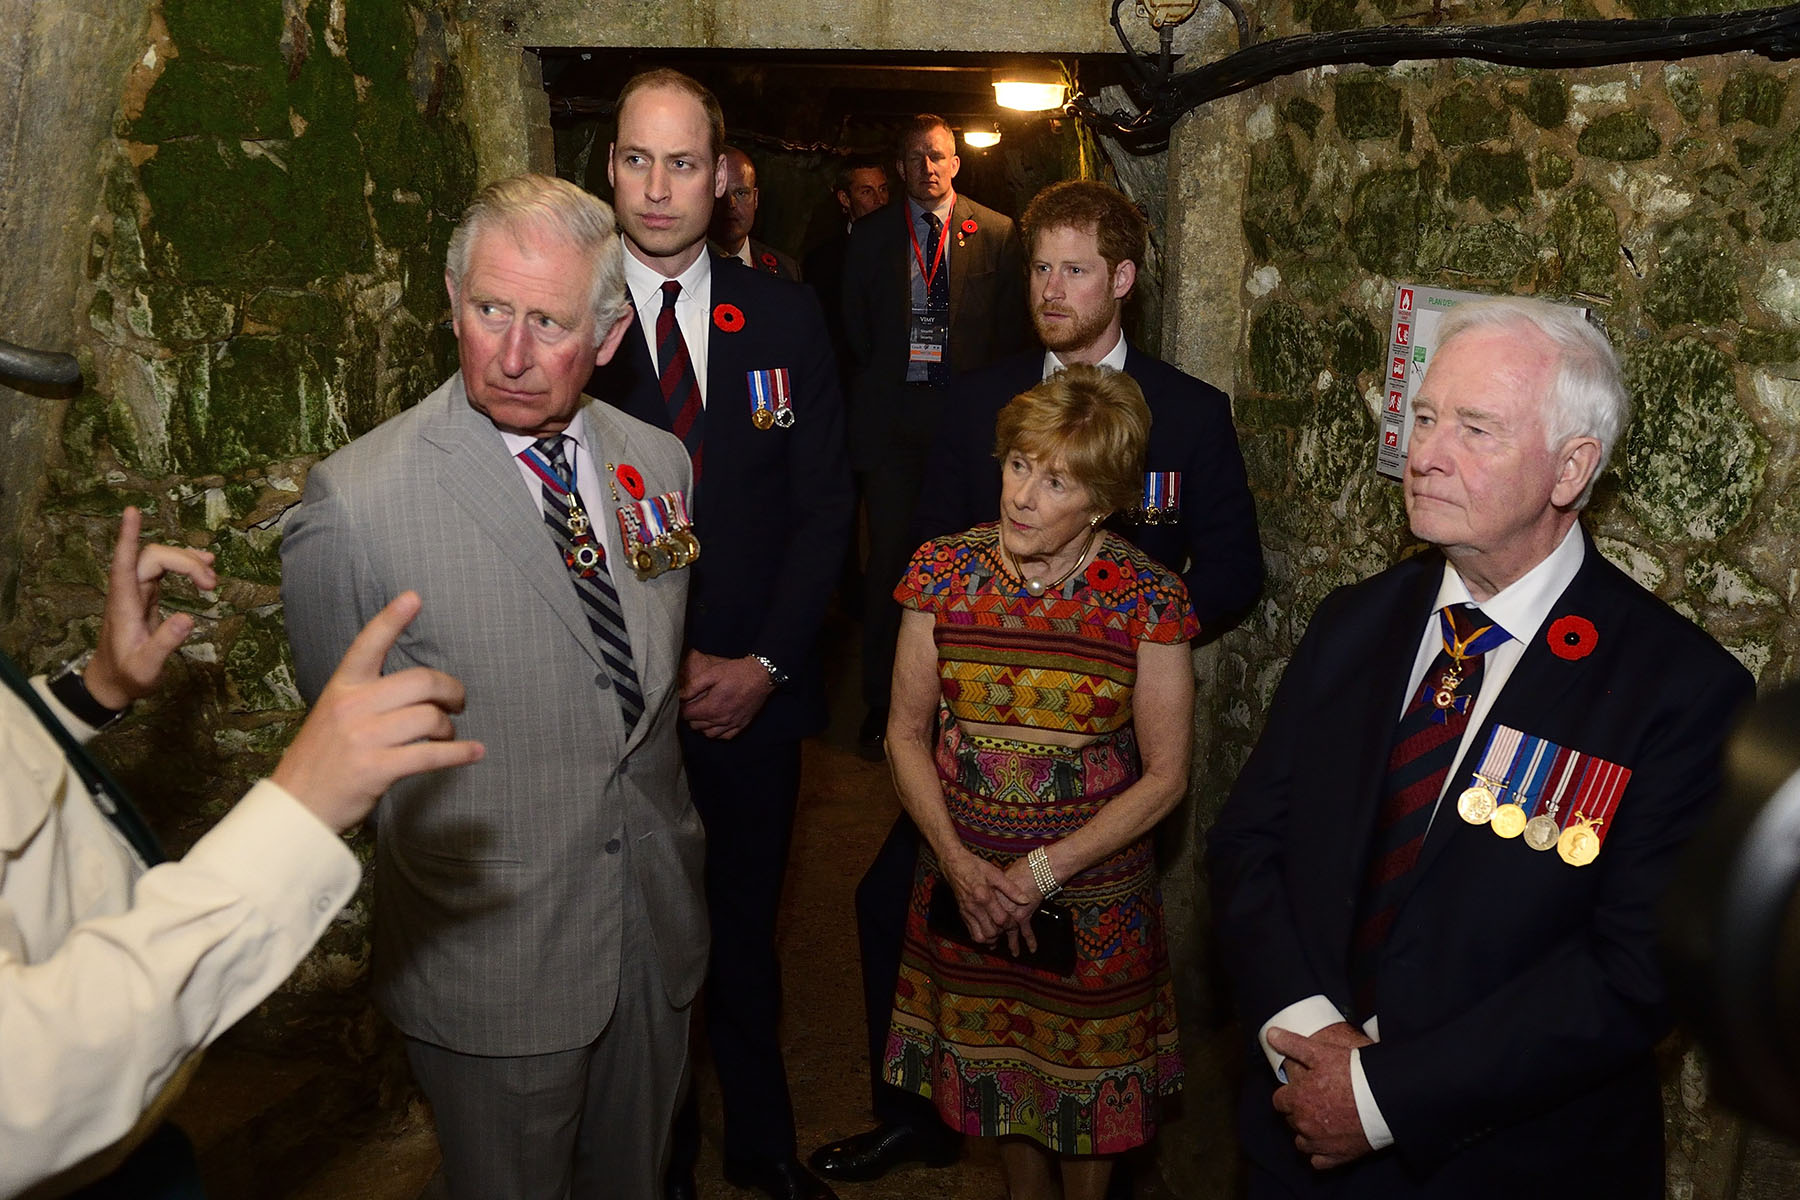 Their Excellencies toured the preserved trench and tunnel systems of Vimy. They were joined by Their Royal Highnesses the Prince of Wales, the Duke of Cambridge and Prince Harry.